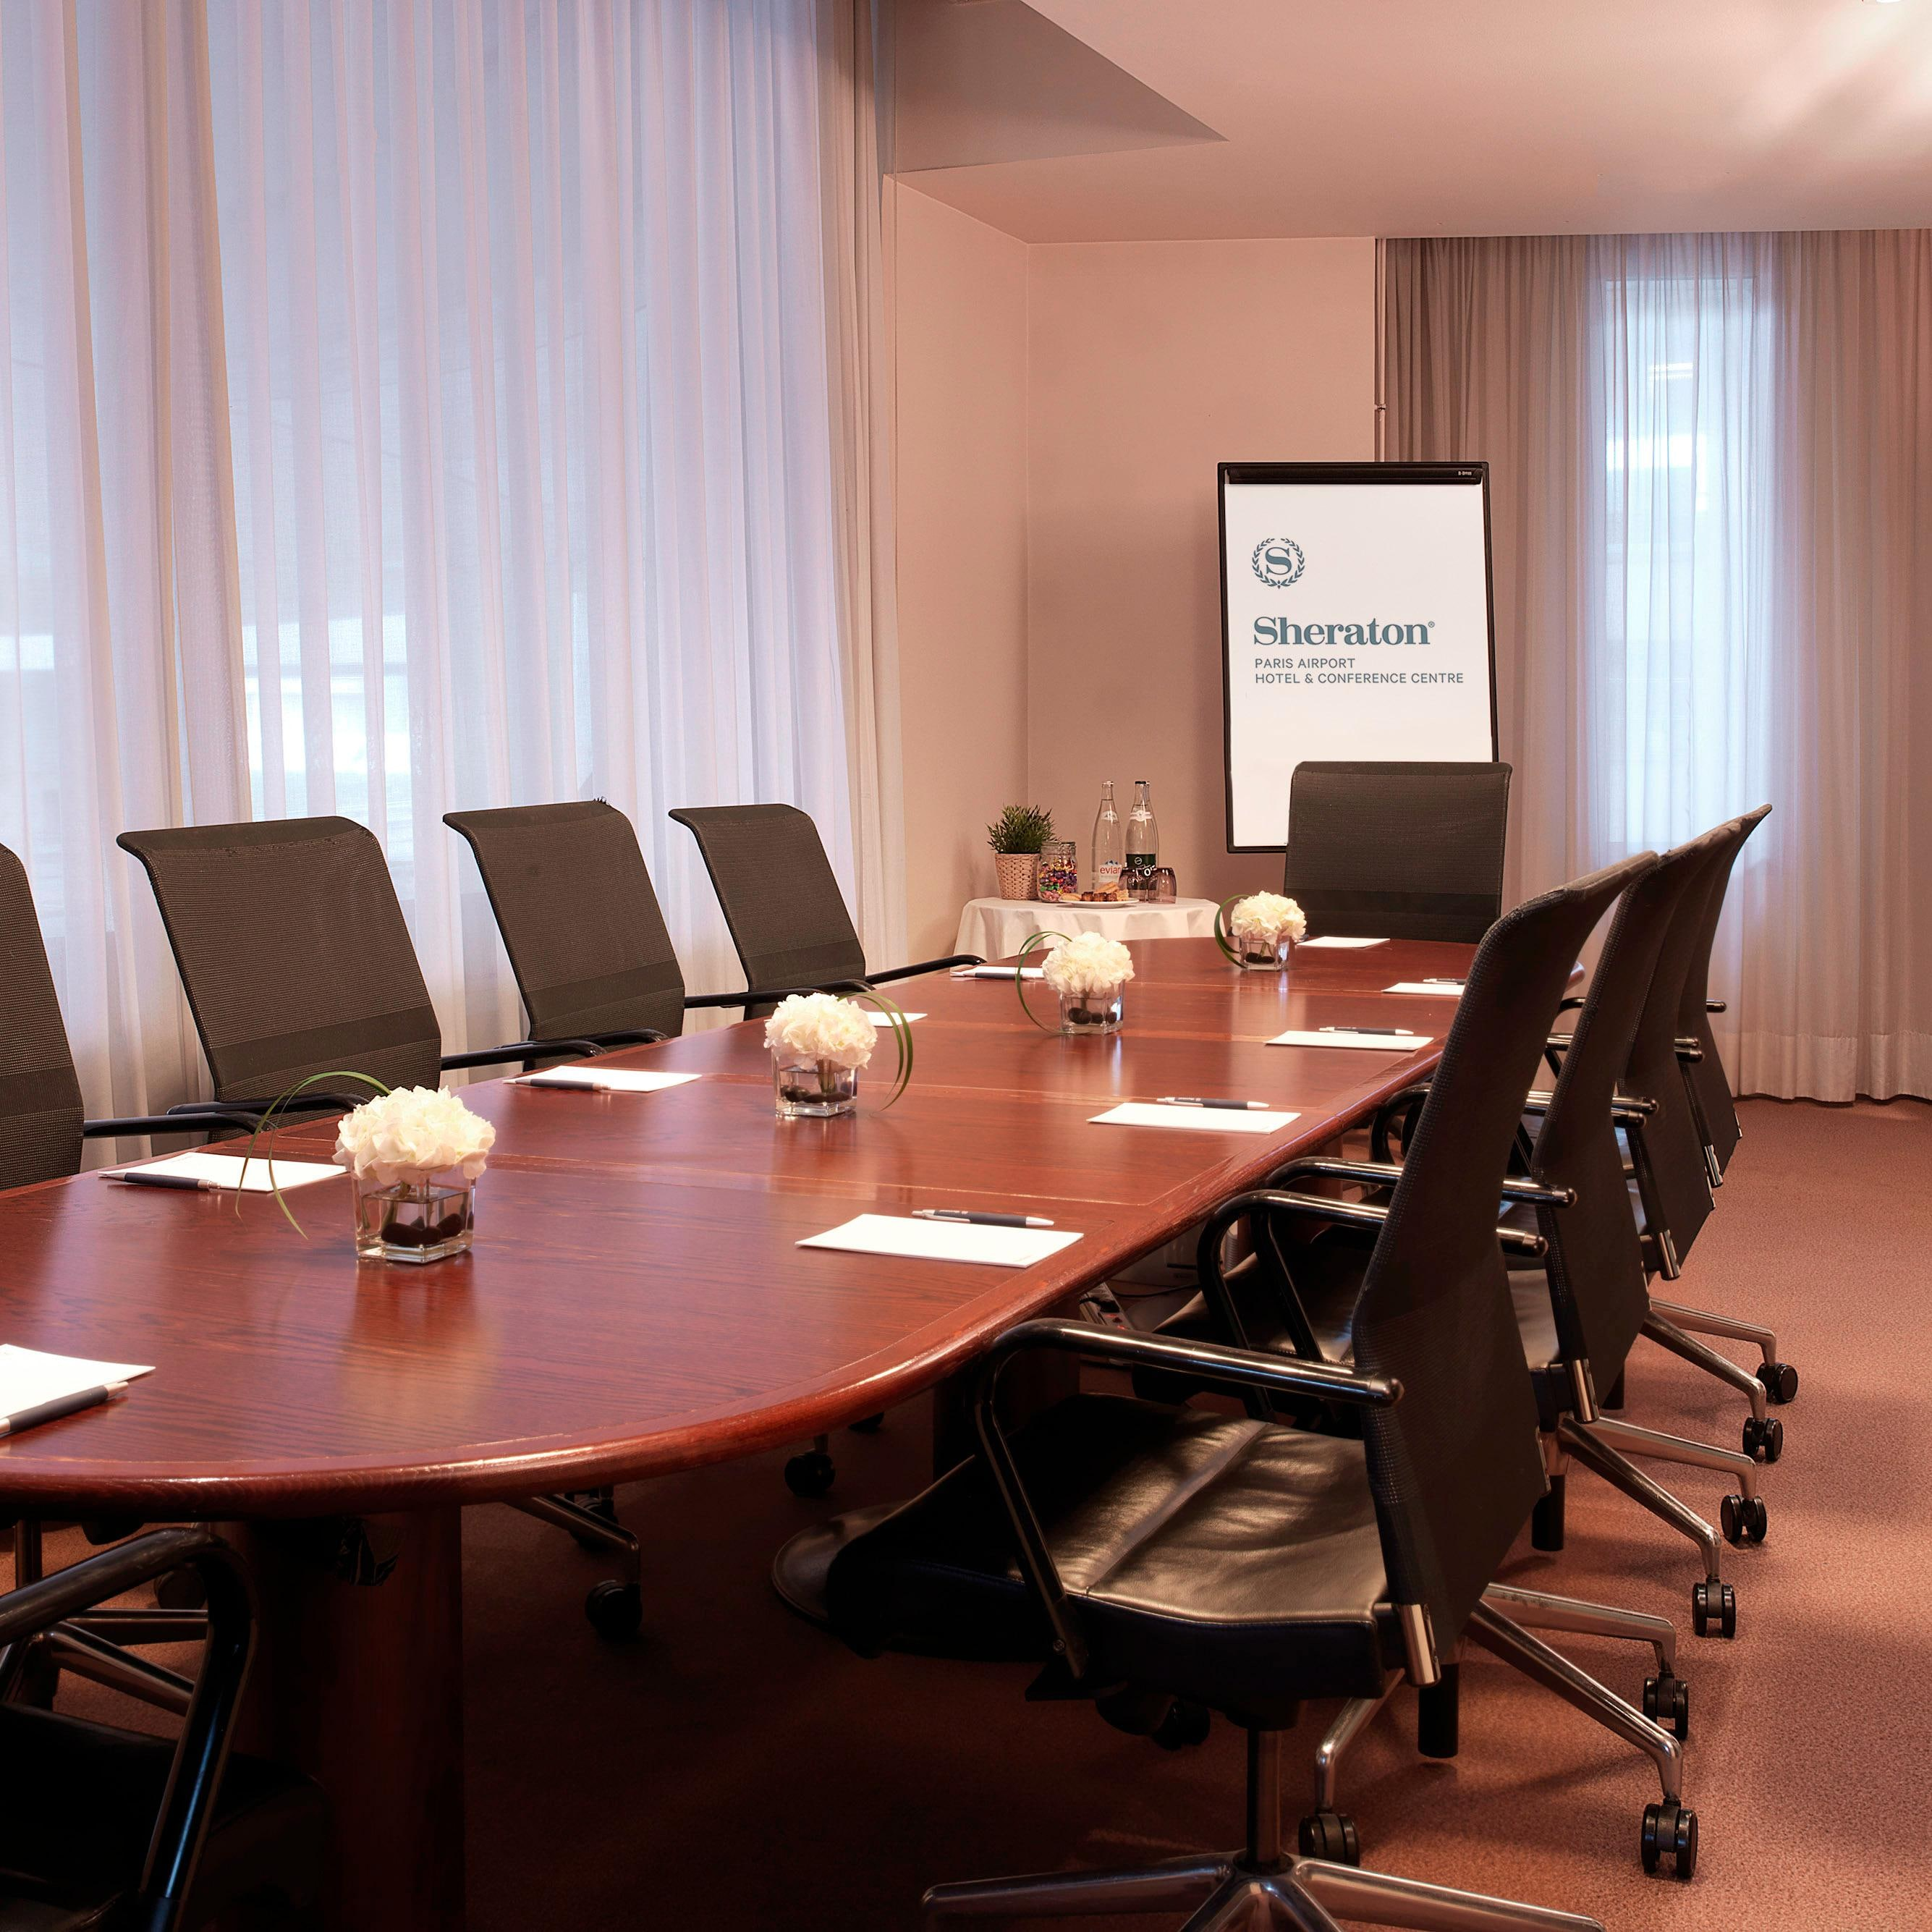 Meeting Room - Boardroom Style